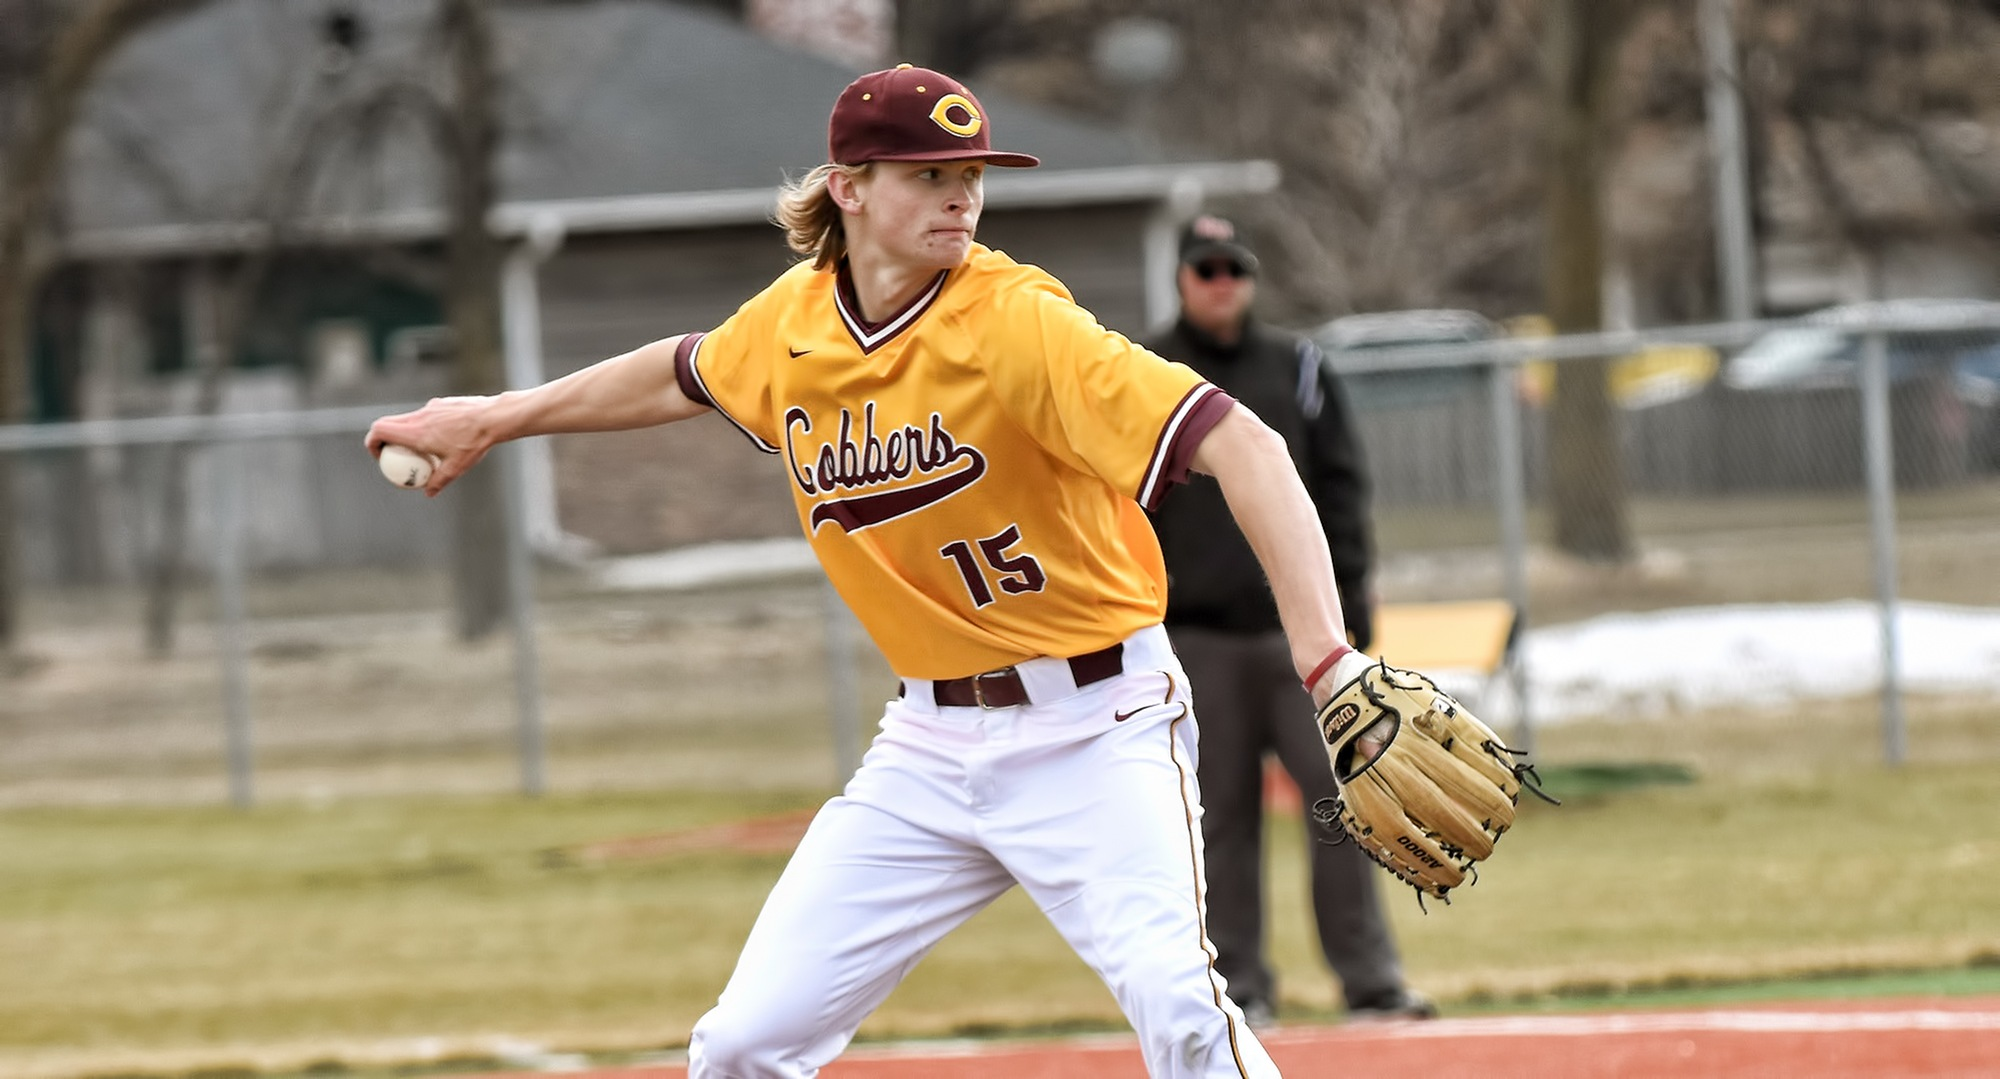 Senior Ty Syverson recorded a complete-game win and only allowed one run and four hits in the Cobbers' 4-1 win over Pitt.-Greensburg.